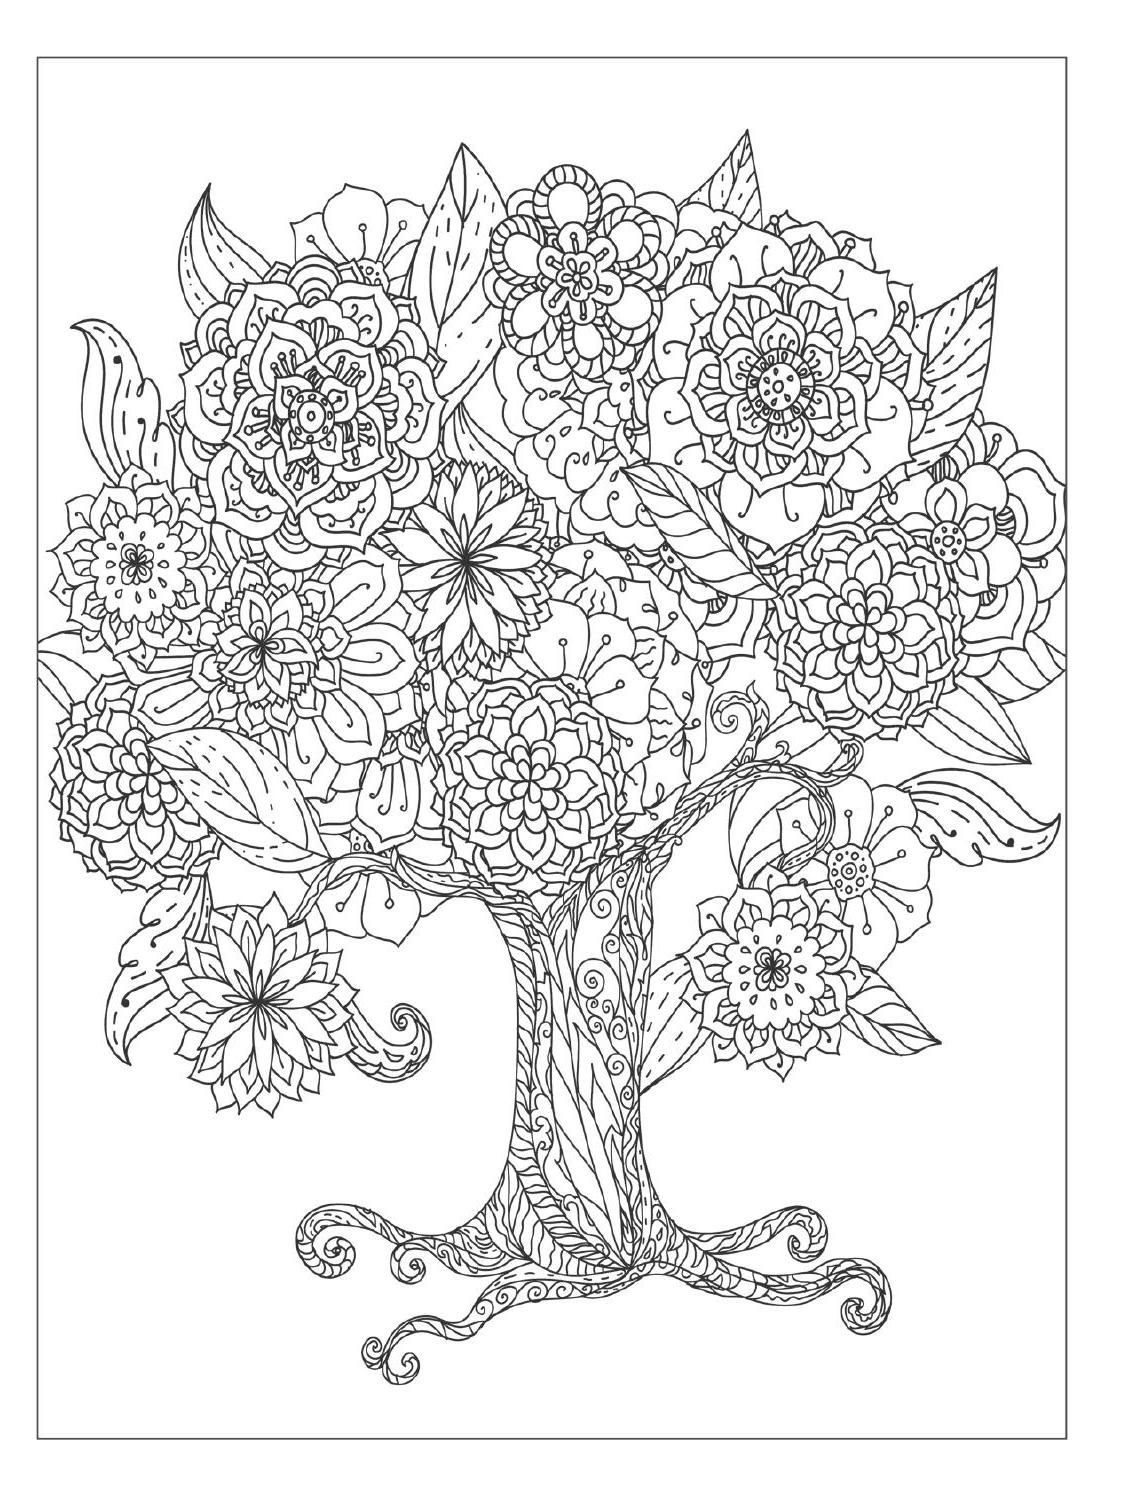 Beautiful Flowers Detailed Floral Designs Coloring Book Preview Tree Coloring Page Designs Coloring Books Flower Coloring Pages